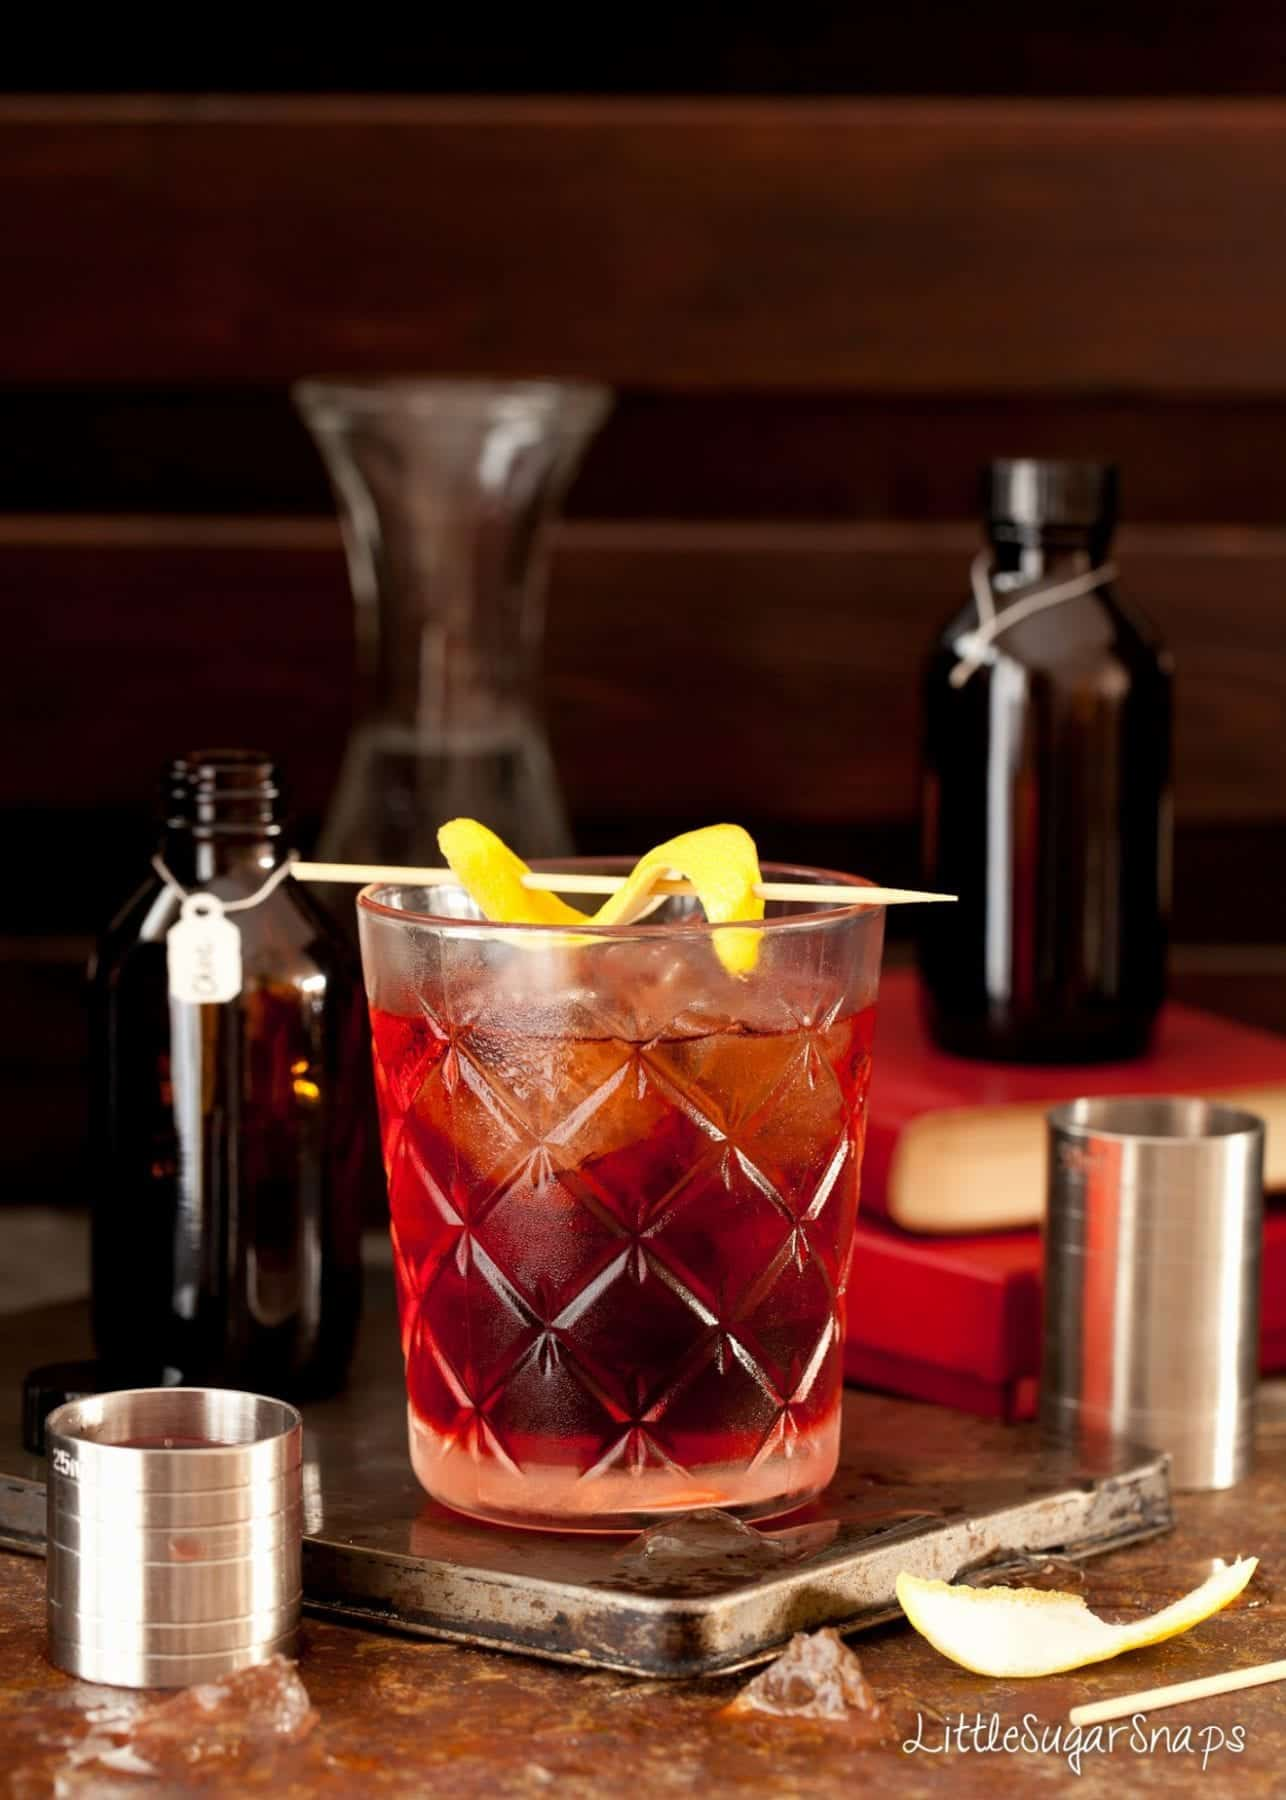 A classic negroni cocktail garnished with fresh lemon.